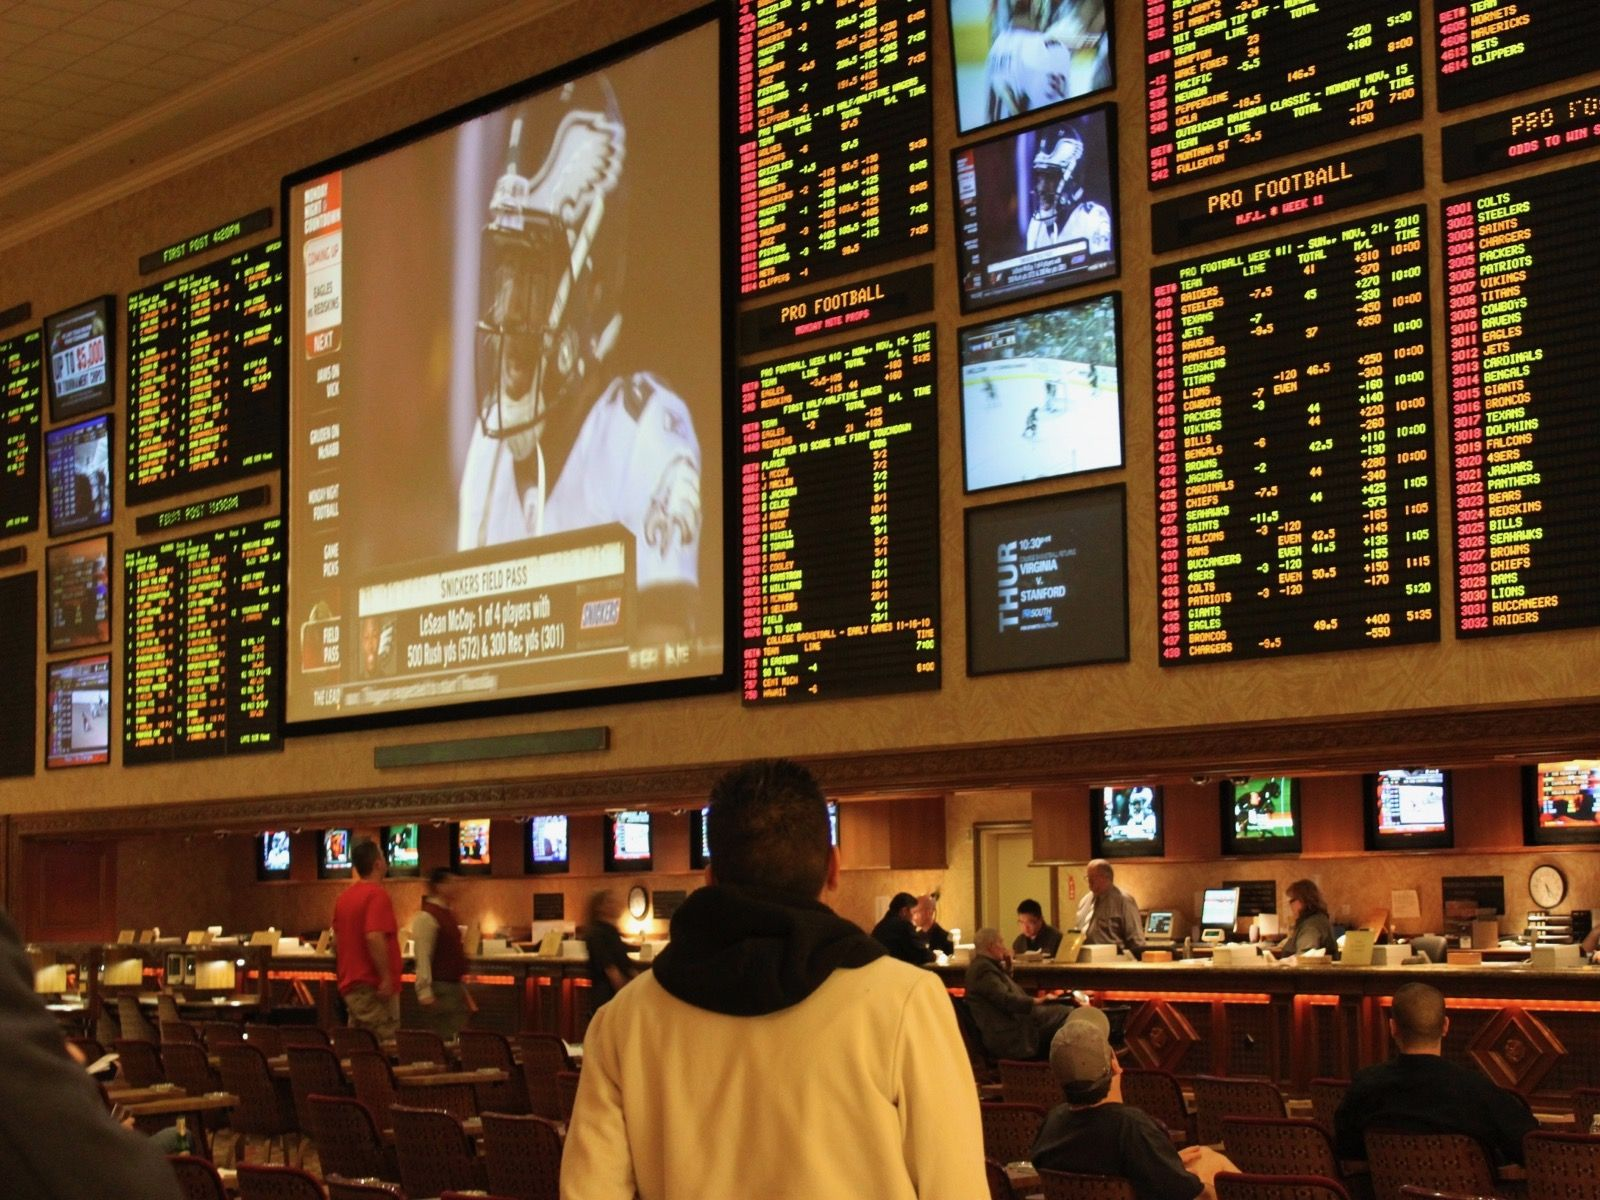 Stateline Problem gambling a concern as sports betting